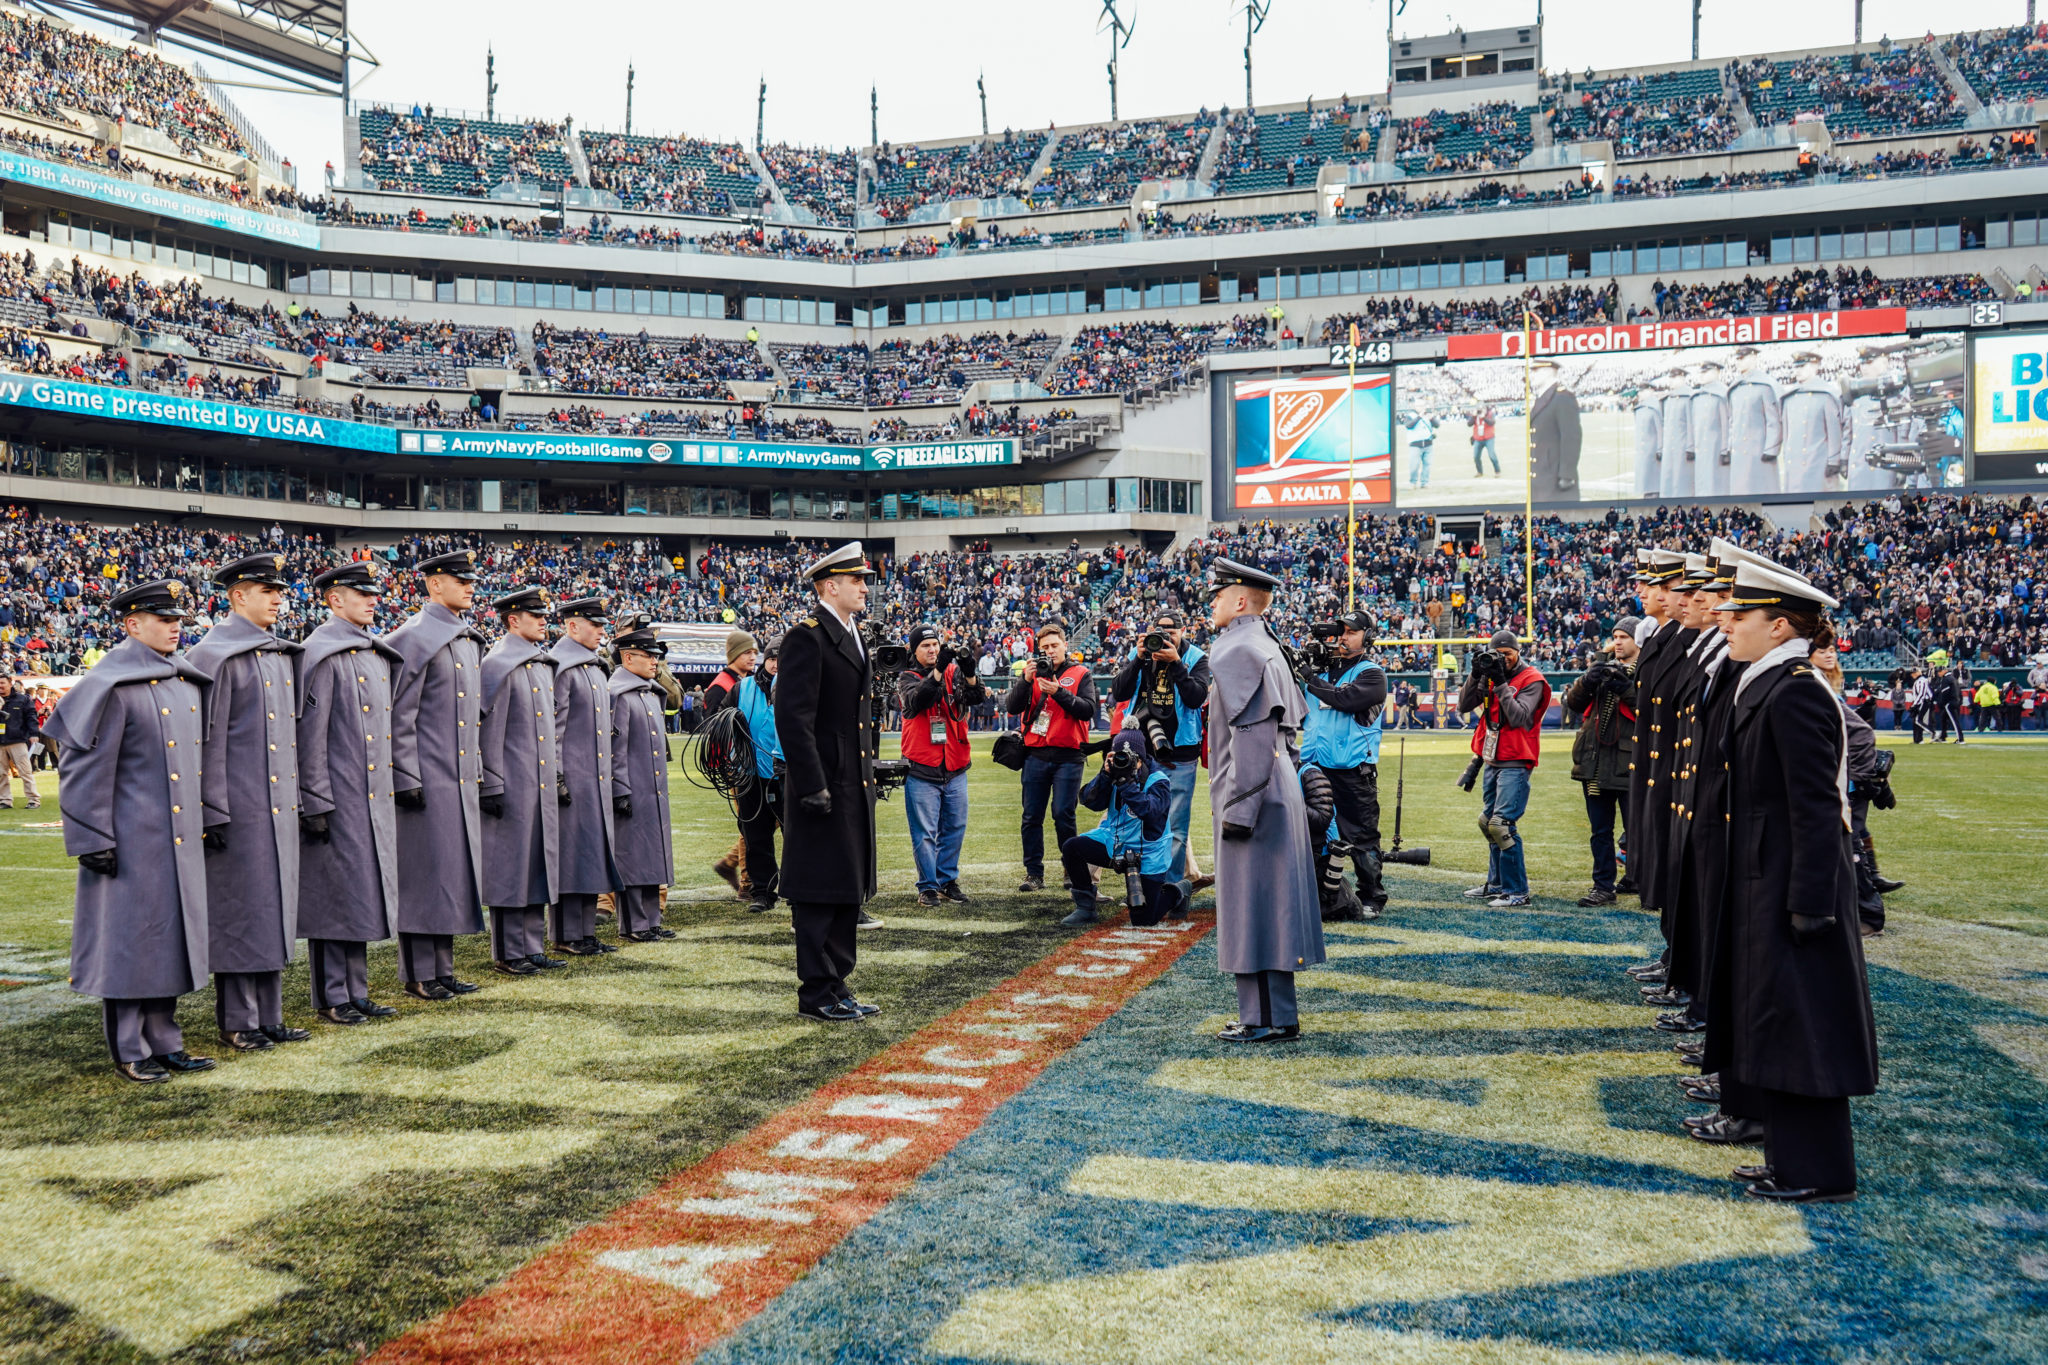 Army-Navy Game 2018 photo credit K Huff for PHLCVB (2)